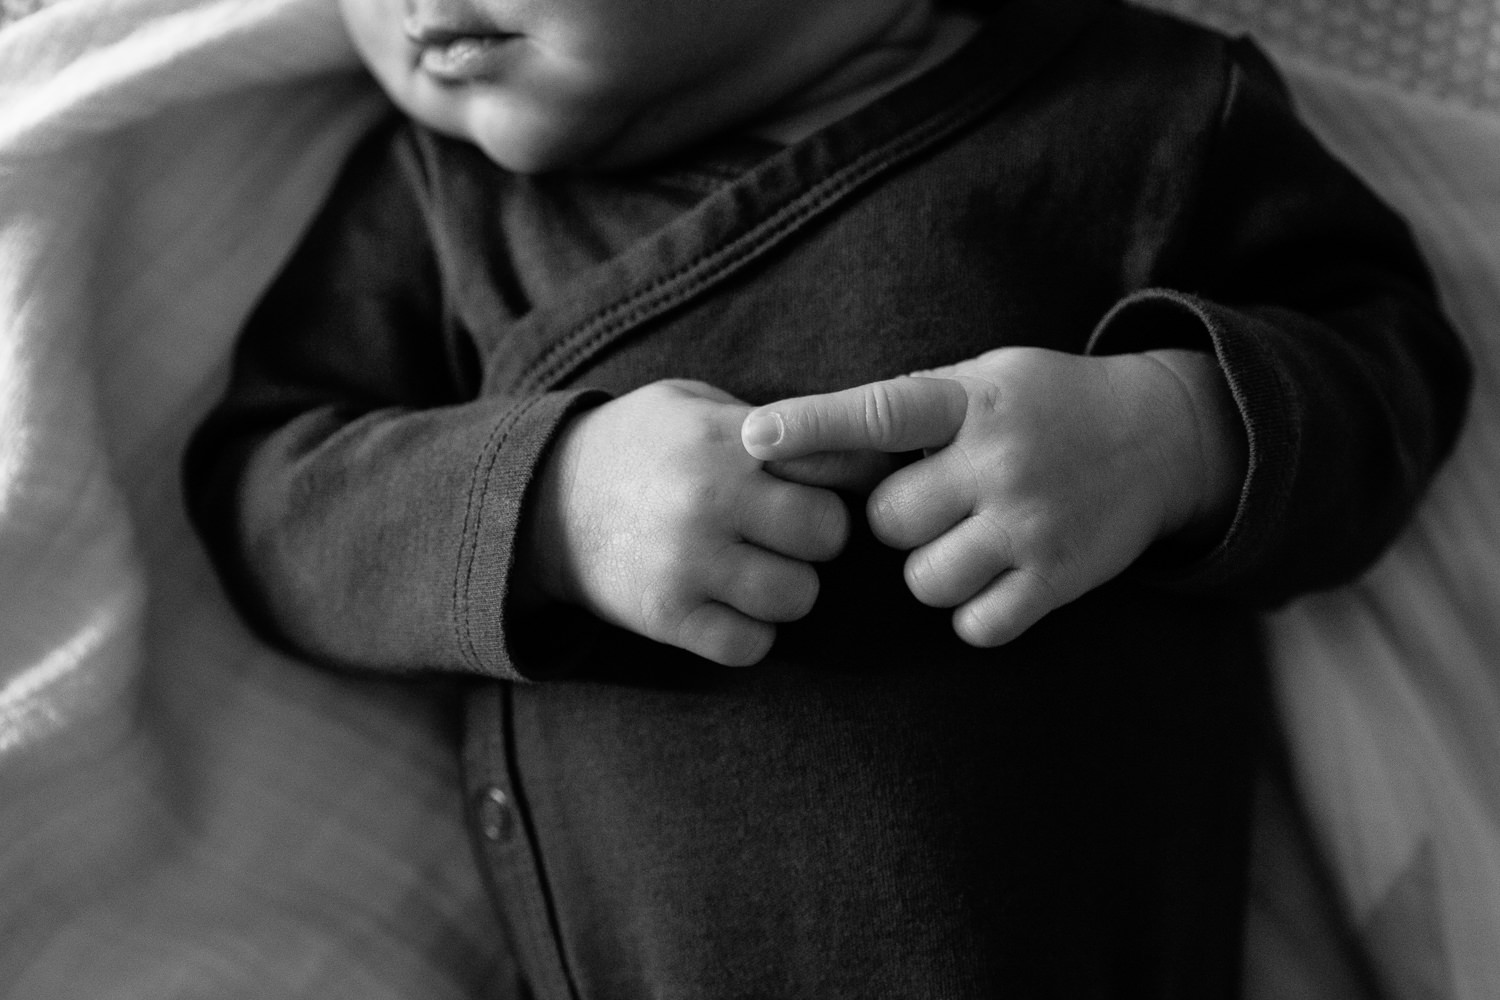 2 week old baby boy wearing dark onesie lying on bed, close up of hands clasped on chest - Barrie In-Home Photography